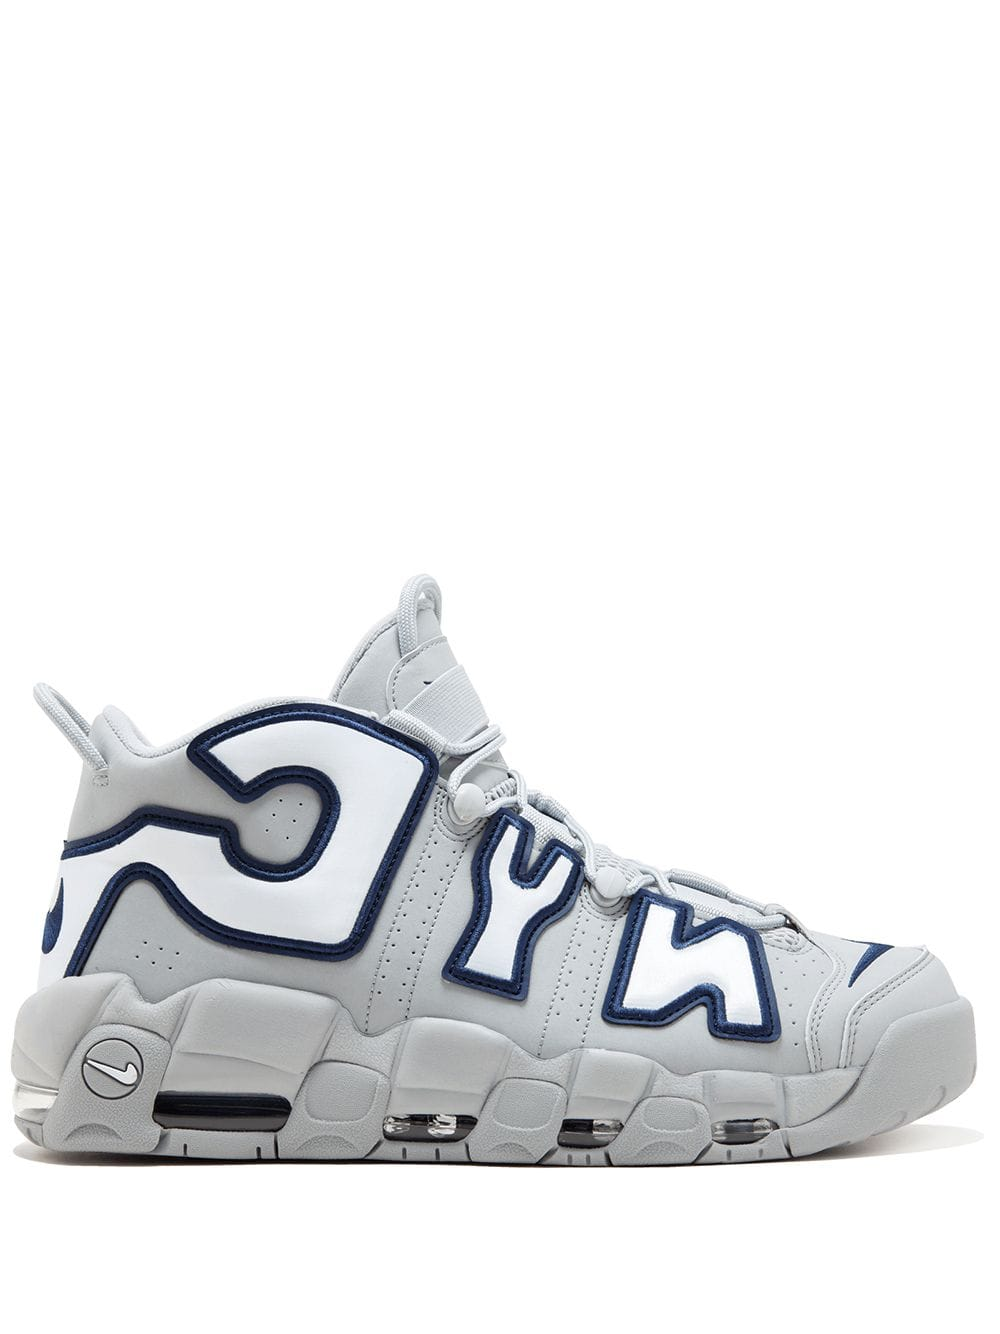 Nike Air More Uptempo NYC sneakers Grey | Products in 2019